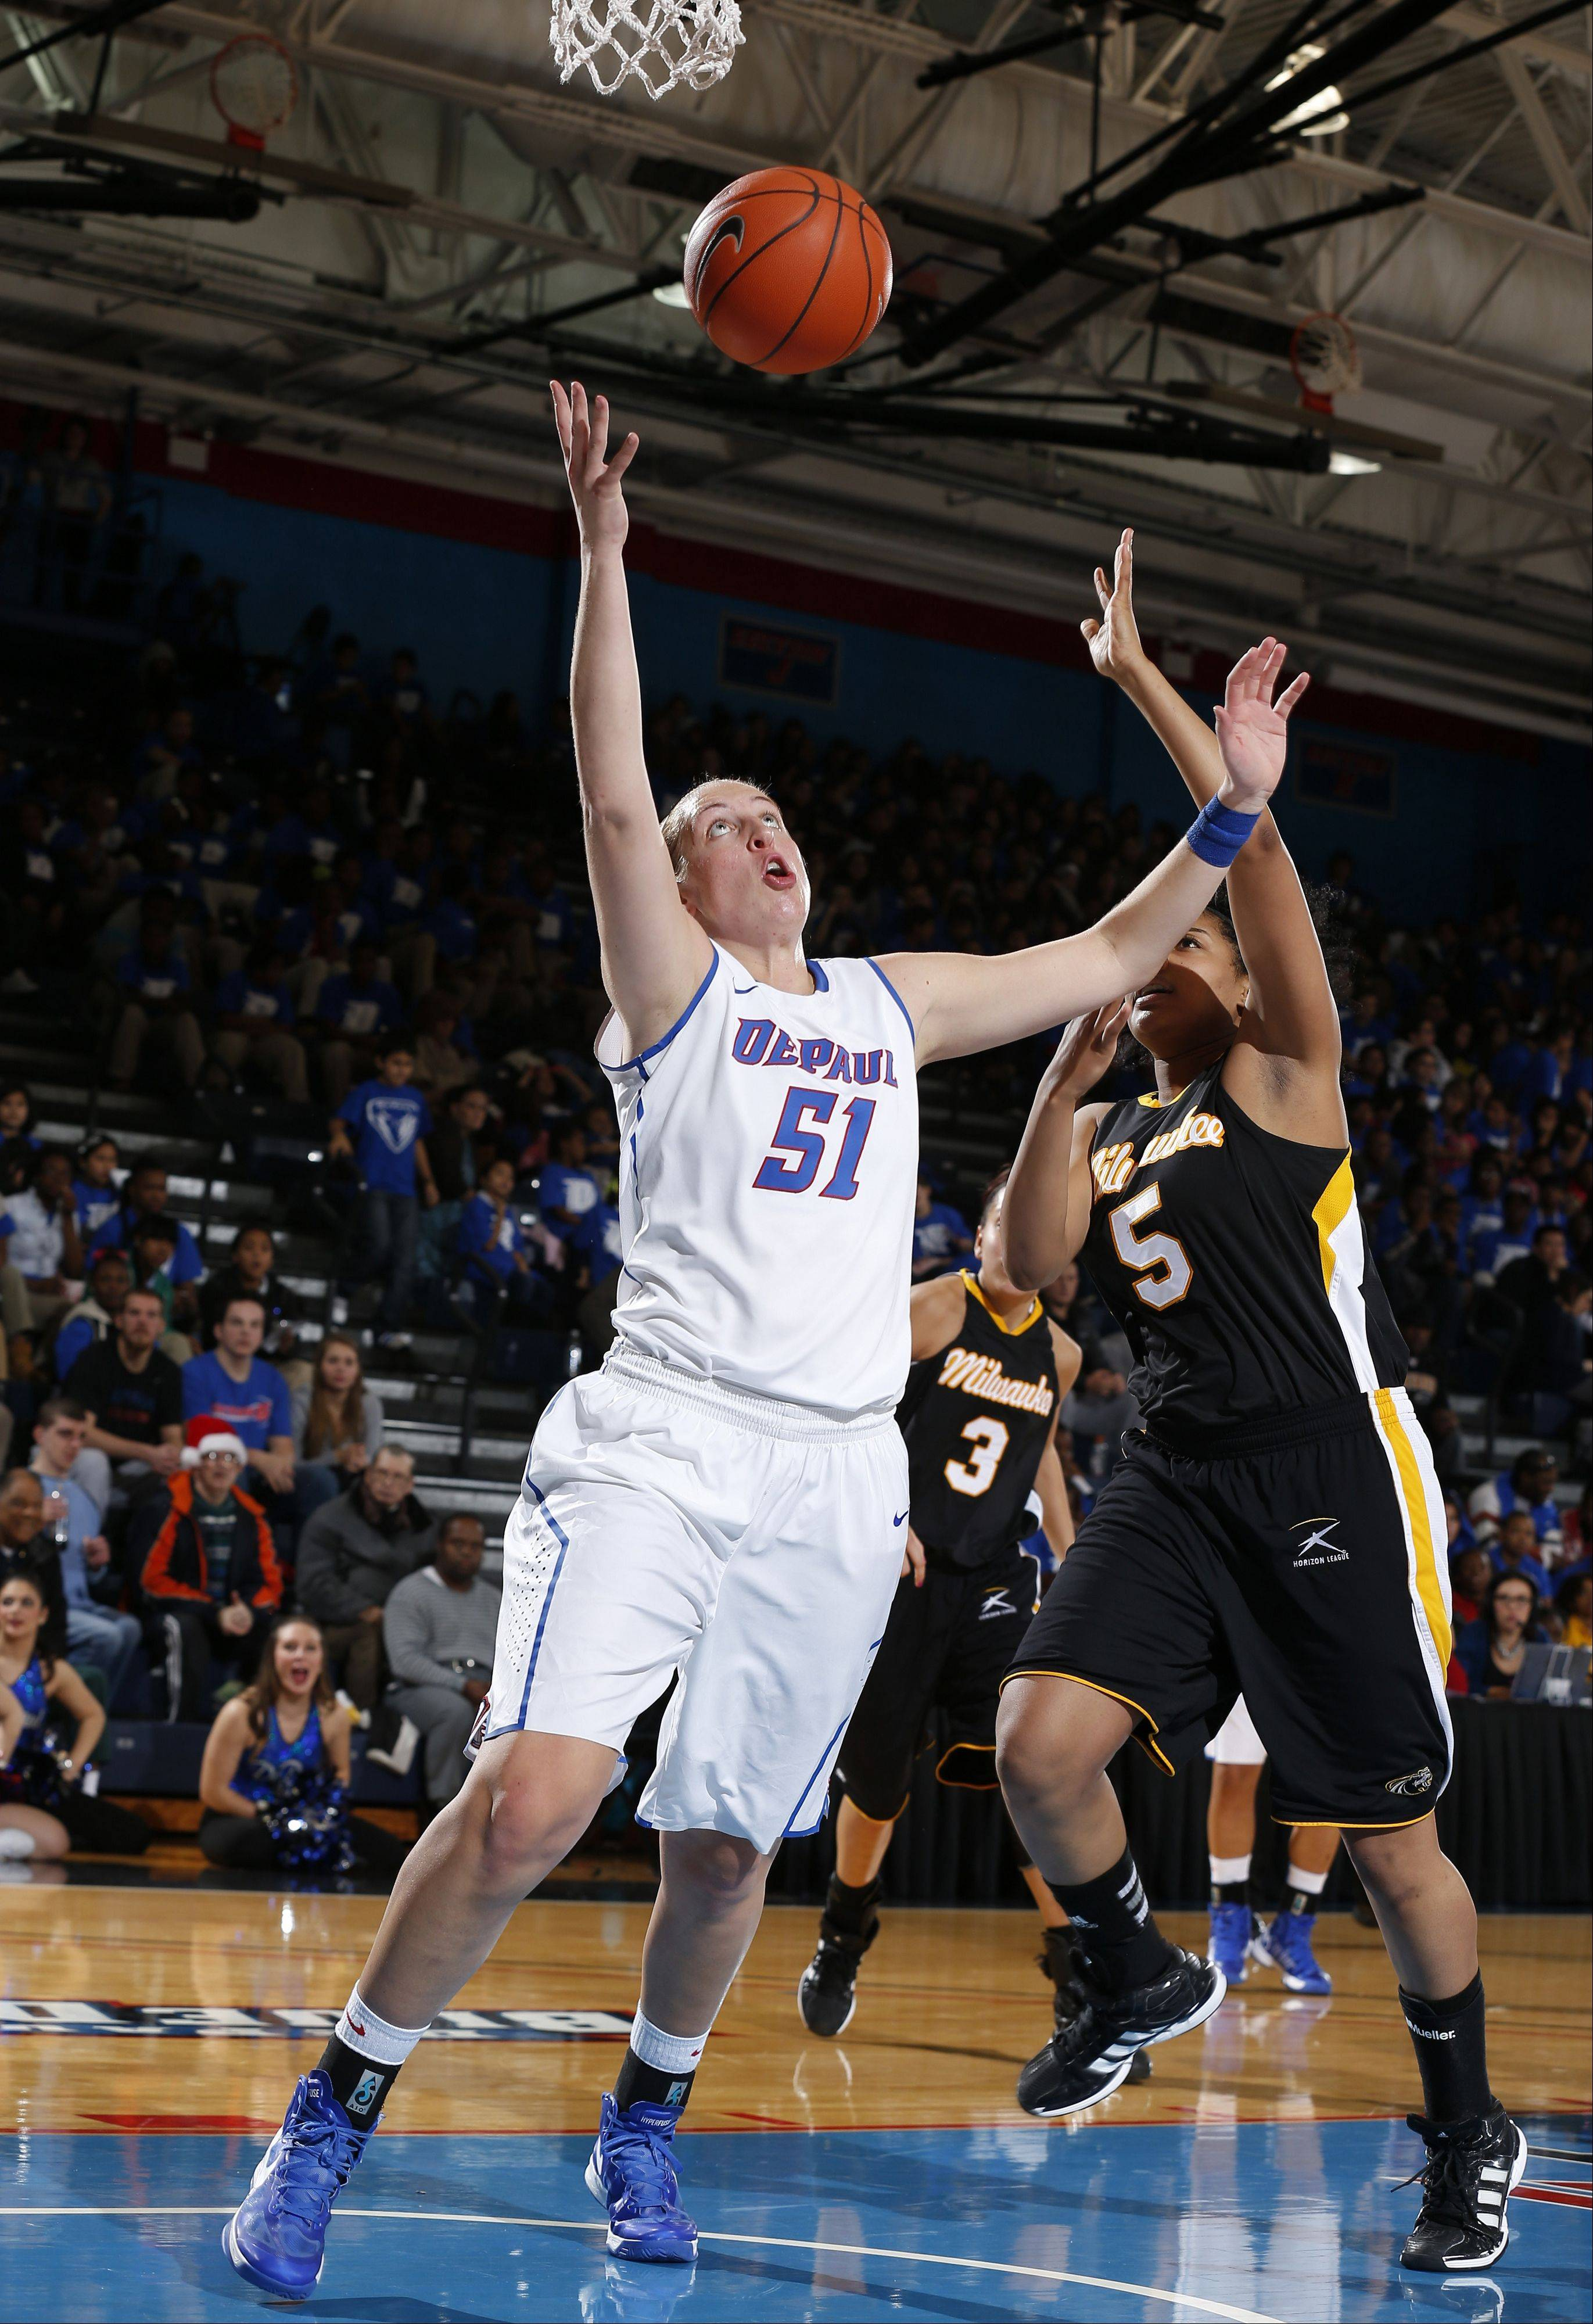 Katherine Harry of DePaul women's basketball team has recorded over 1,000 points and 1,000 rebounds in four years for the Blue Demons.